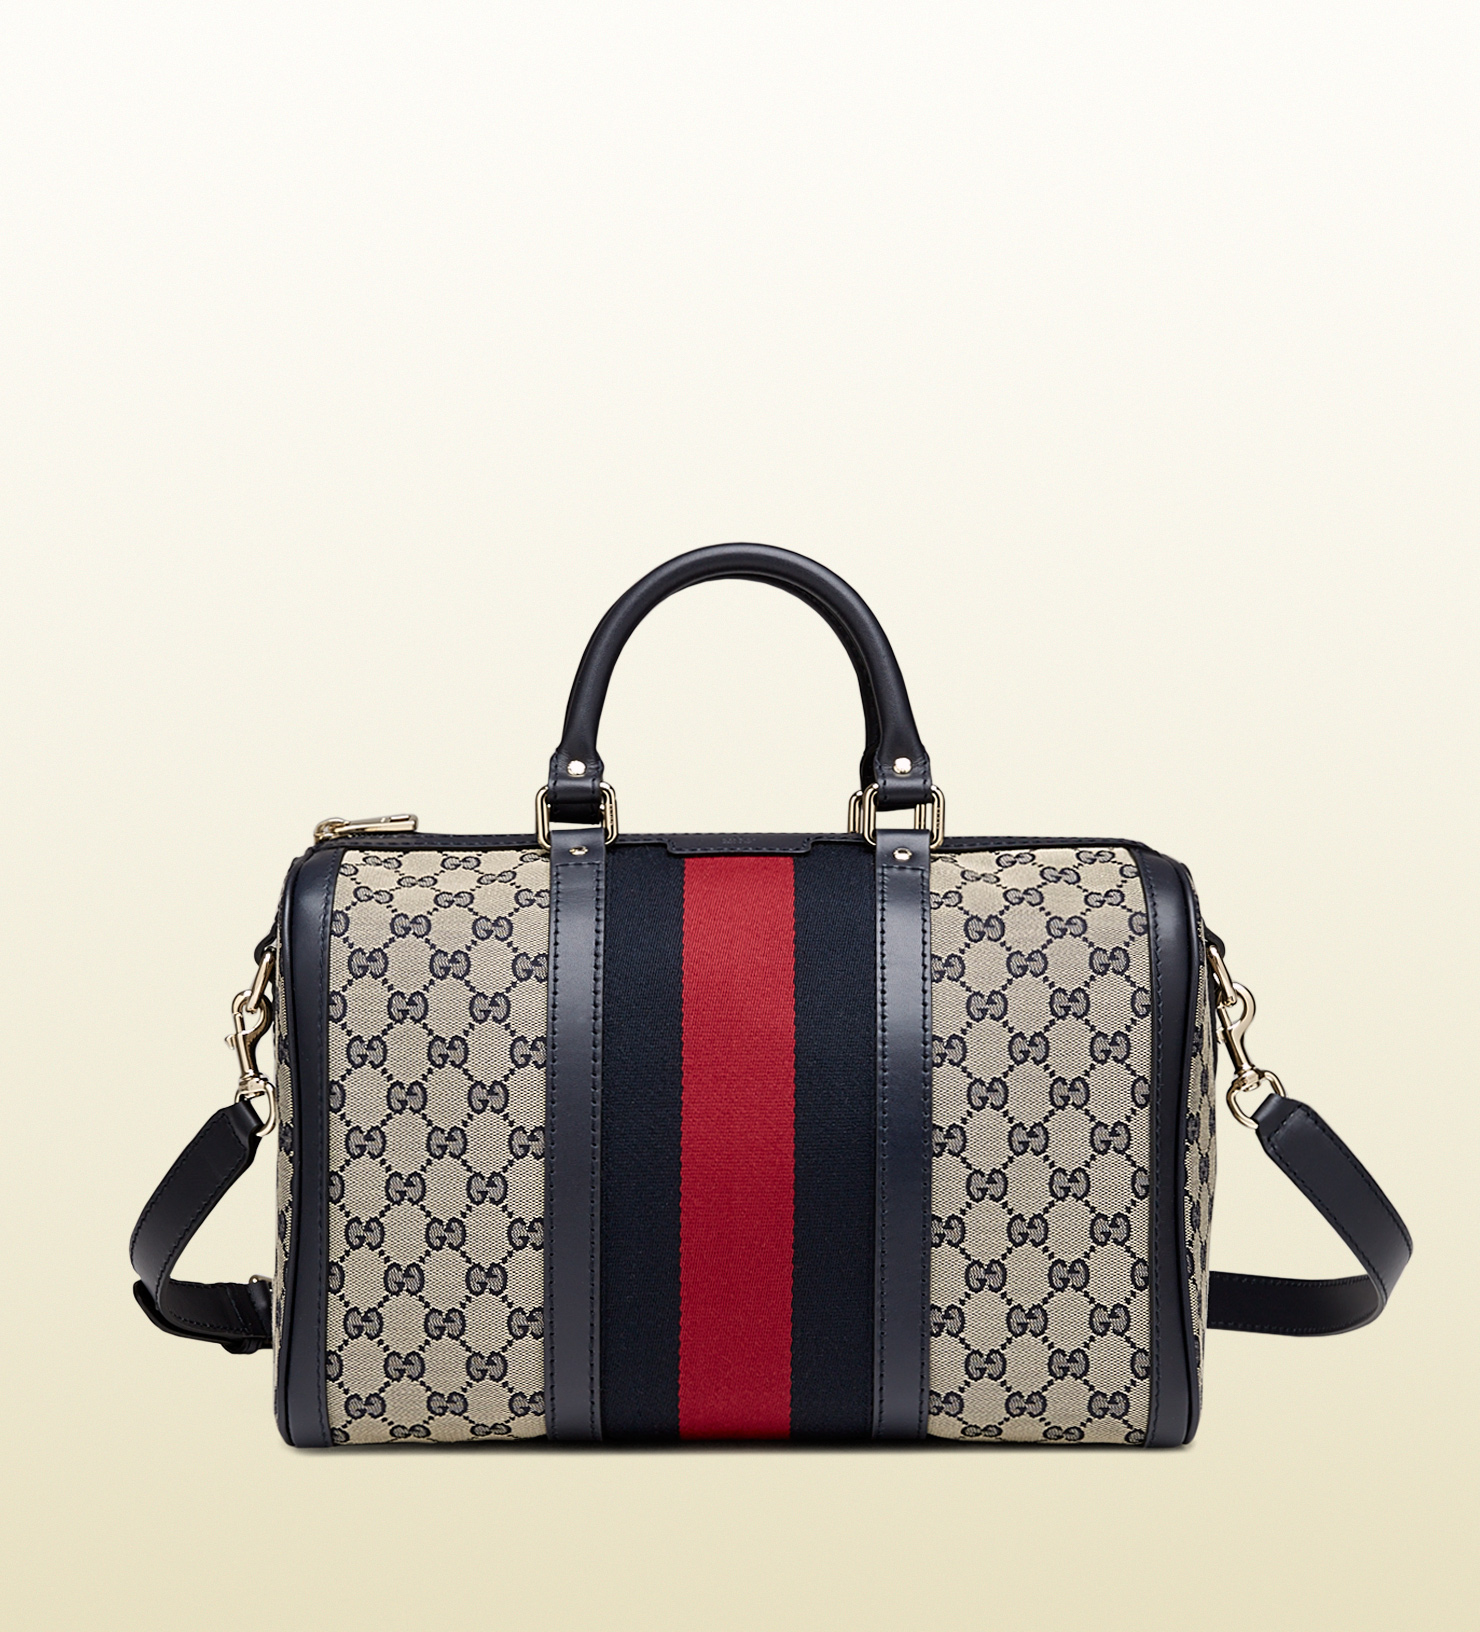 9e2987b4b1630e Gucci Vintage Web Boston Bag Replica | Stanford Center for ...